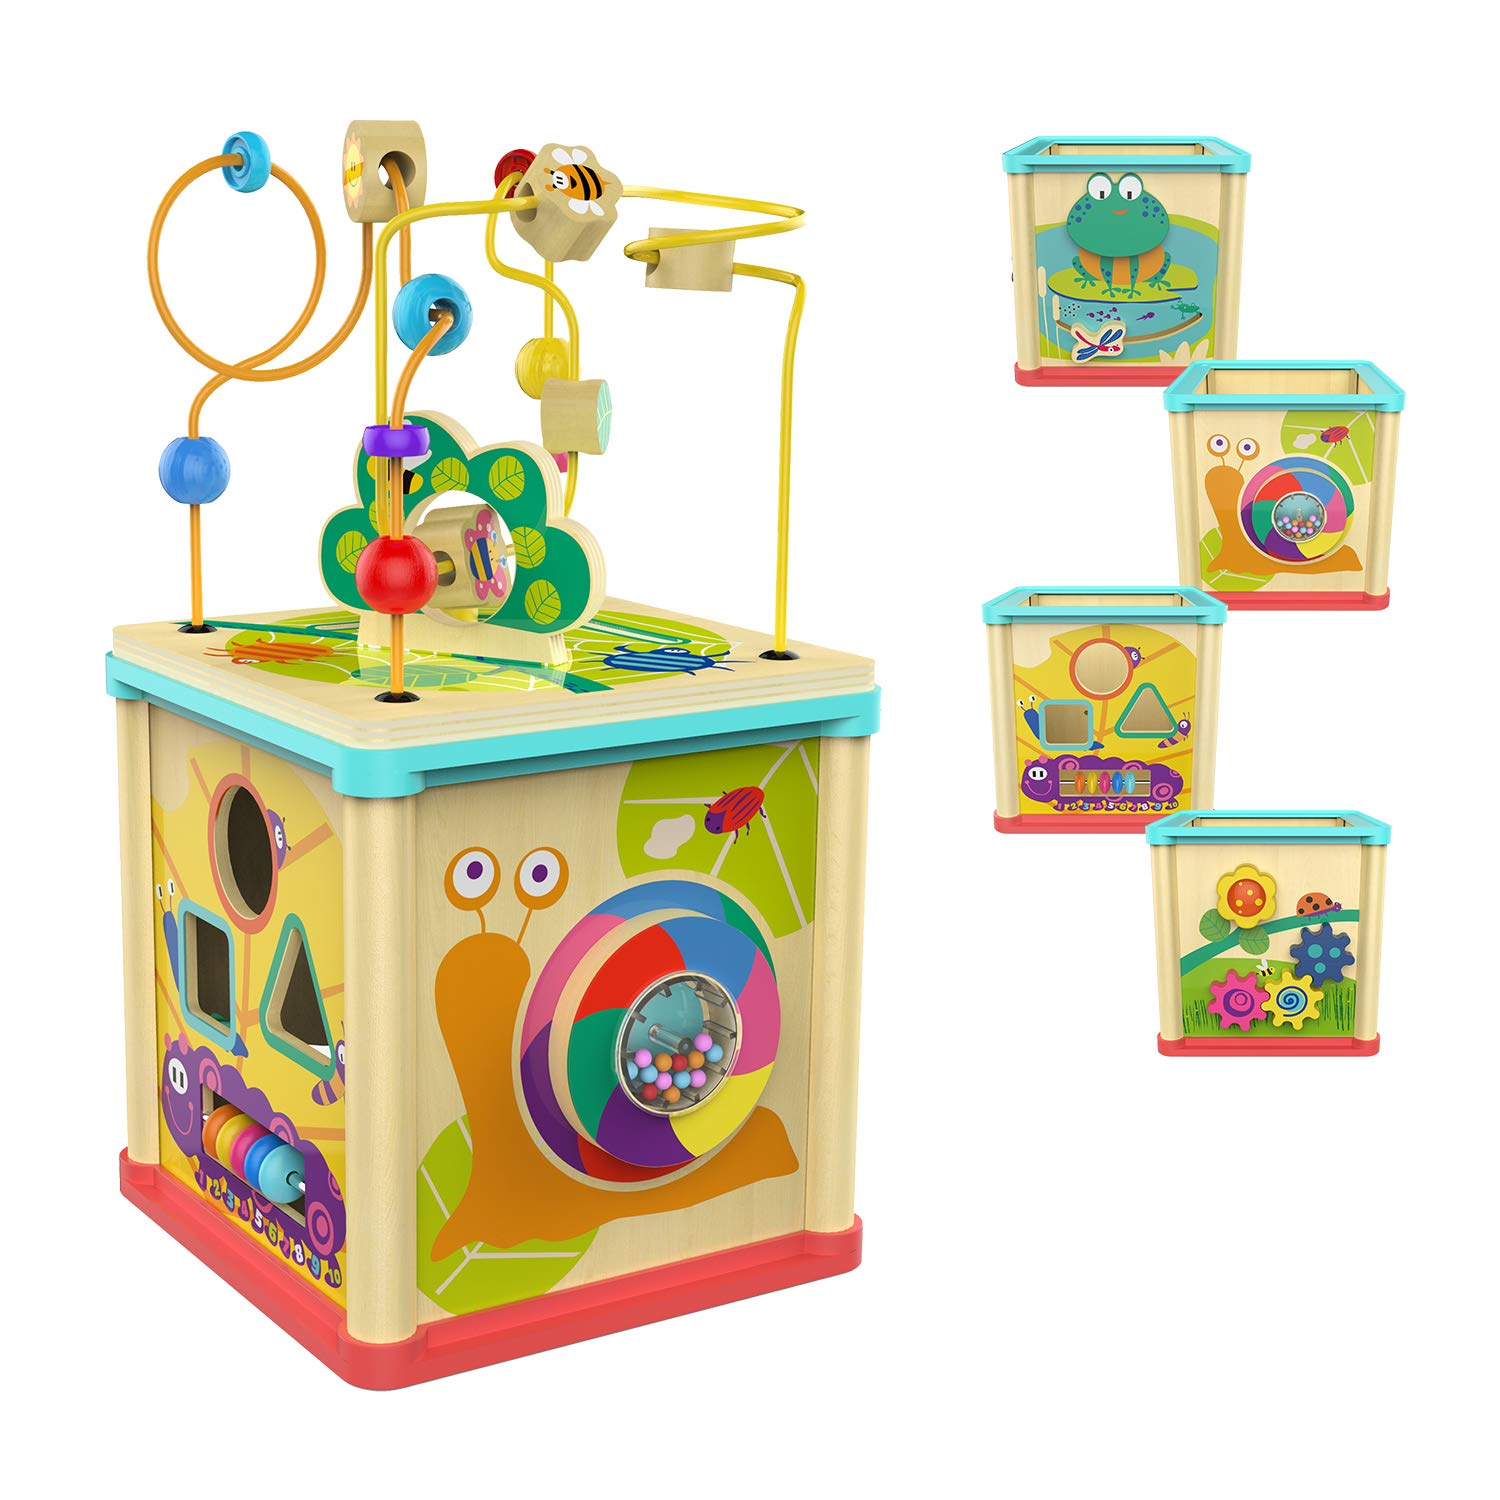 TOP BRIGHT Wooden Activity Cube Toys for 1 Year Old Girl, Baby Bead Toy for Toddlers, One Year Old Boy Gifts Birthday